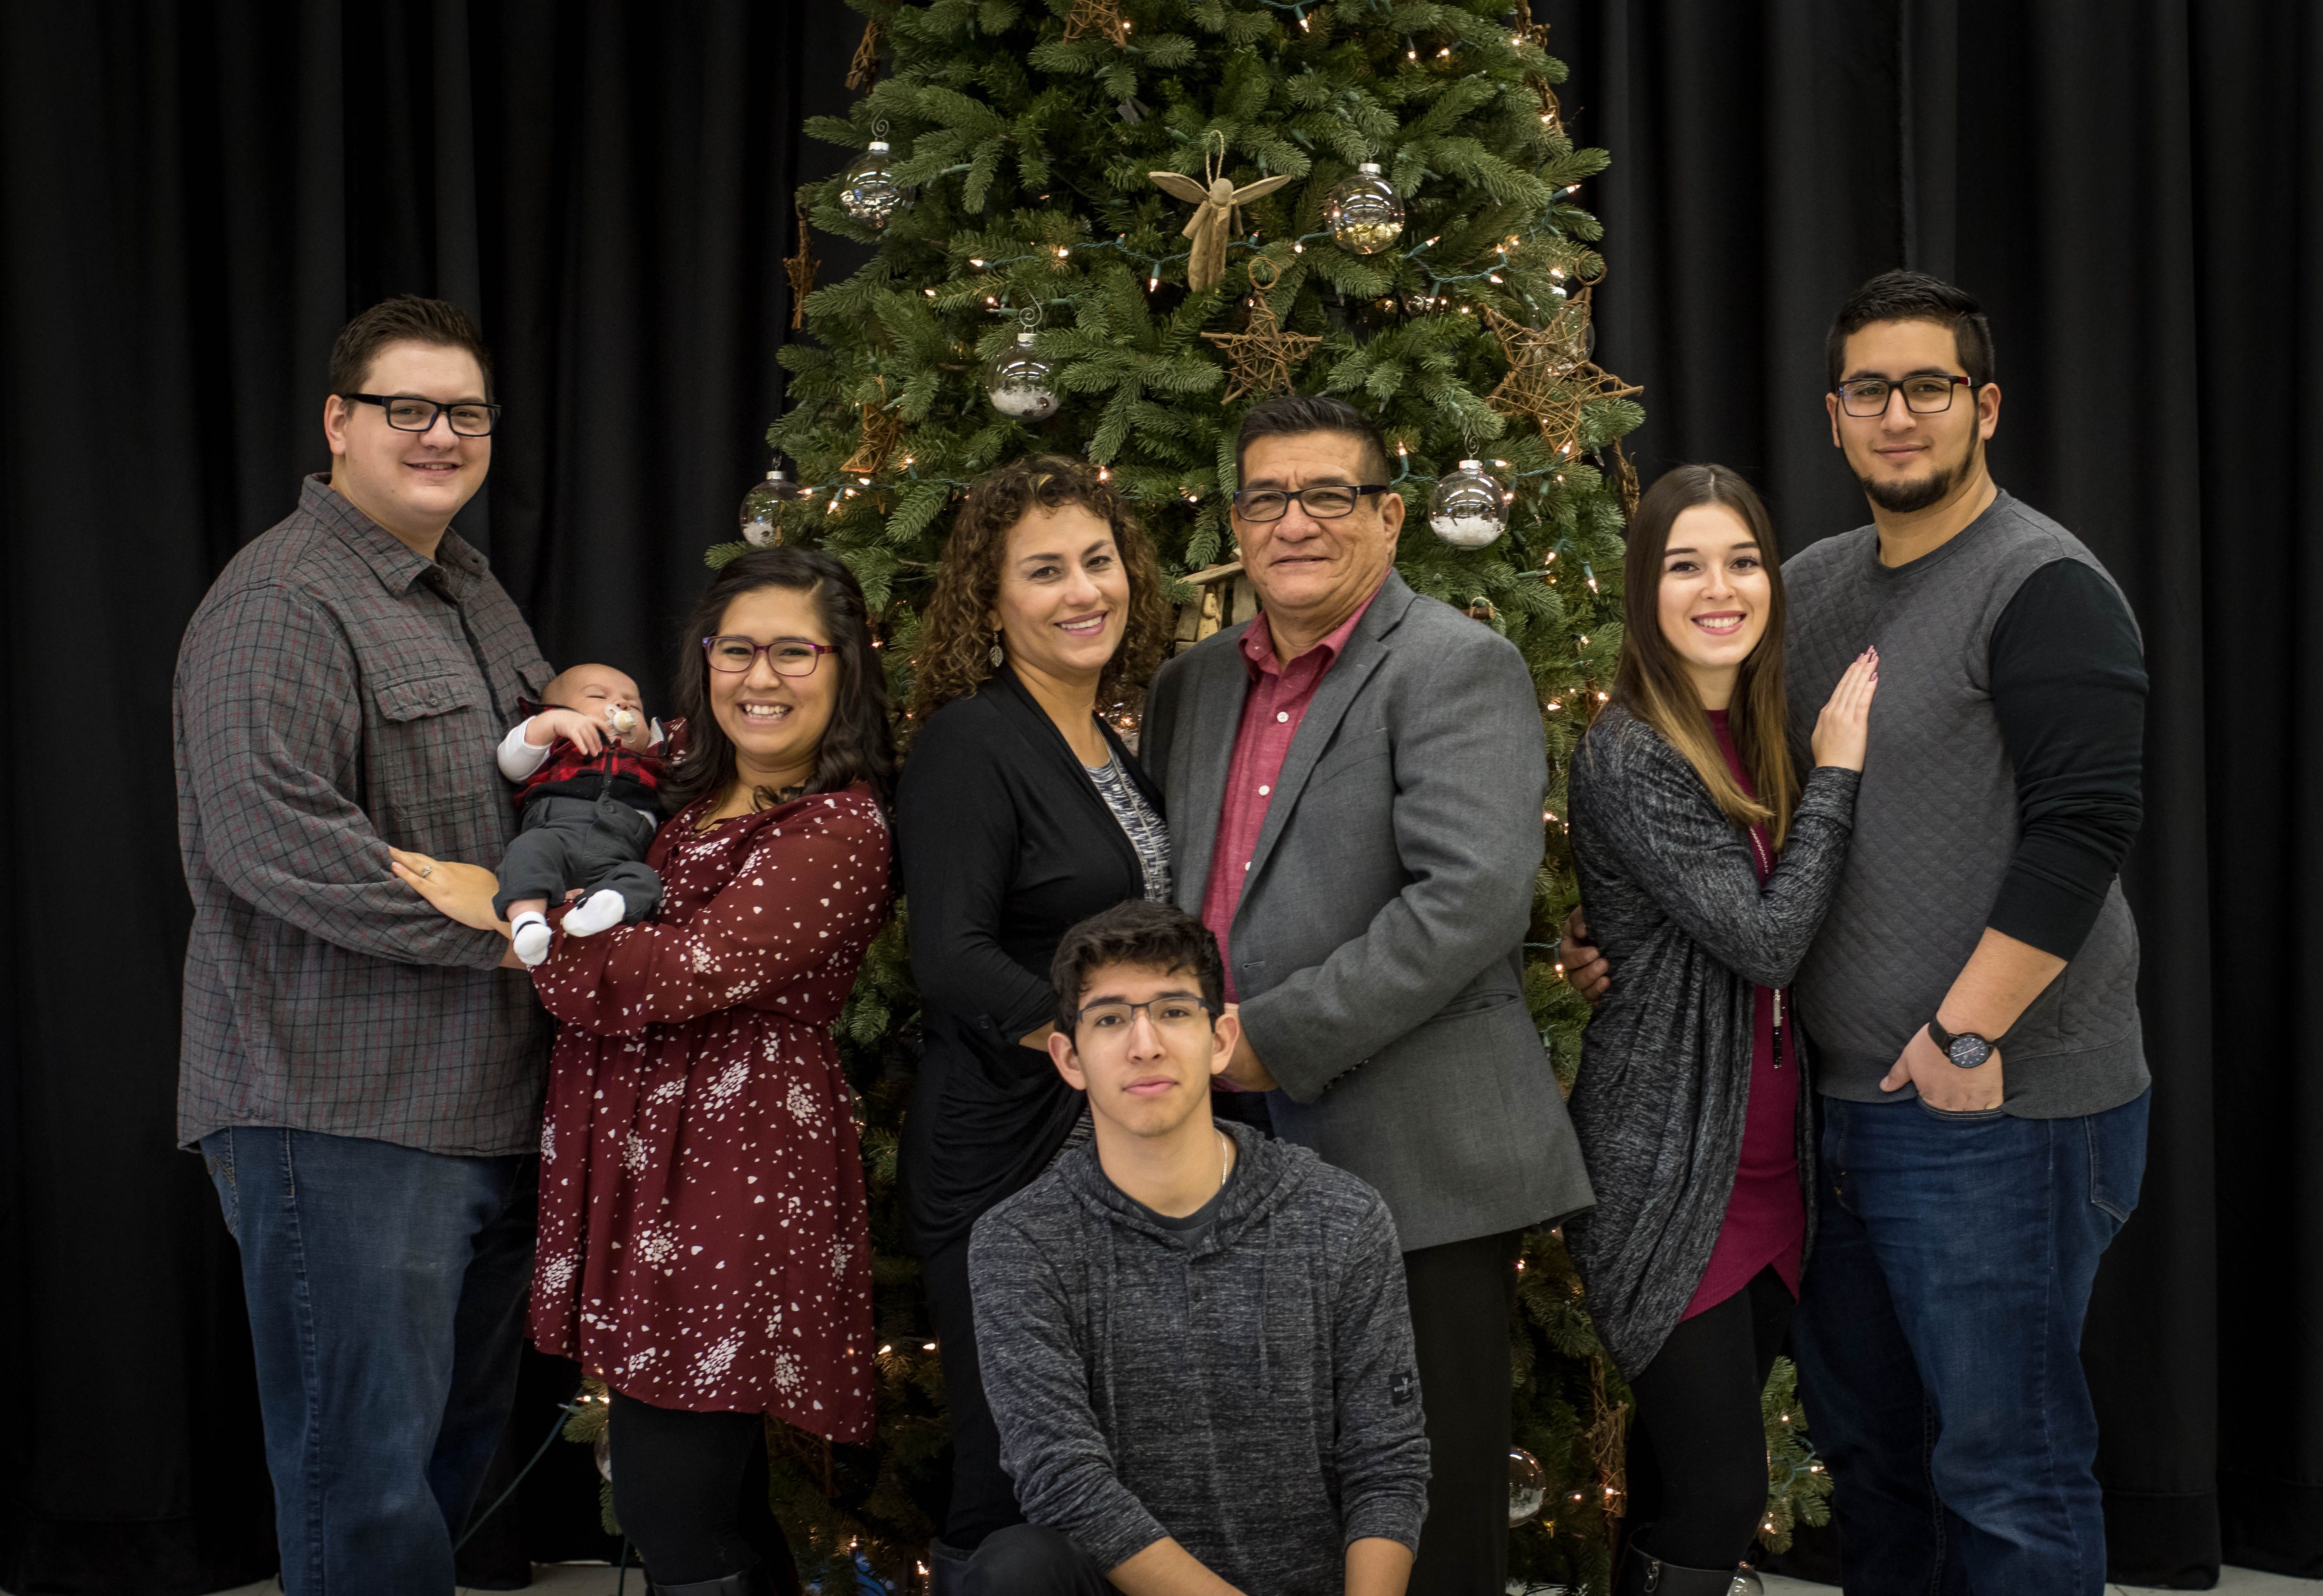 MAGALLANES FAMILY MINISTRY